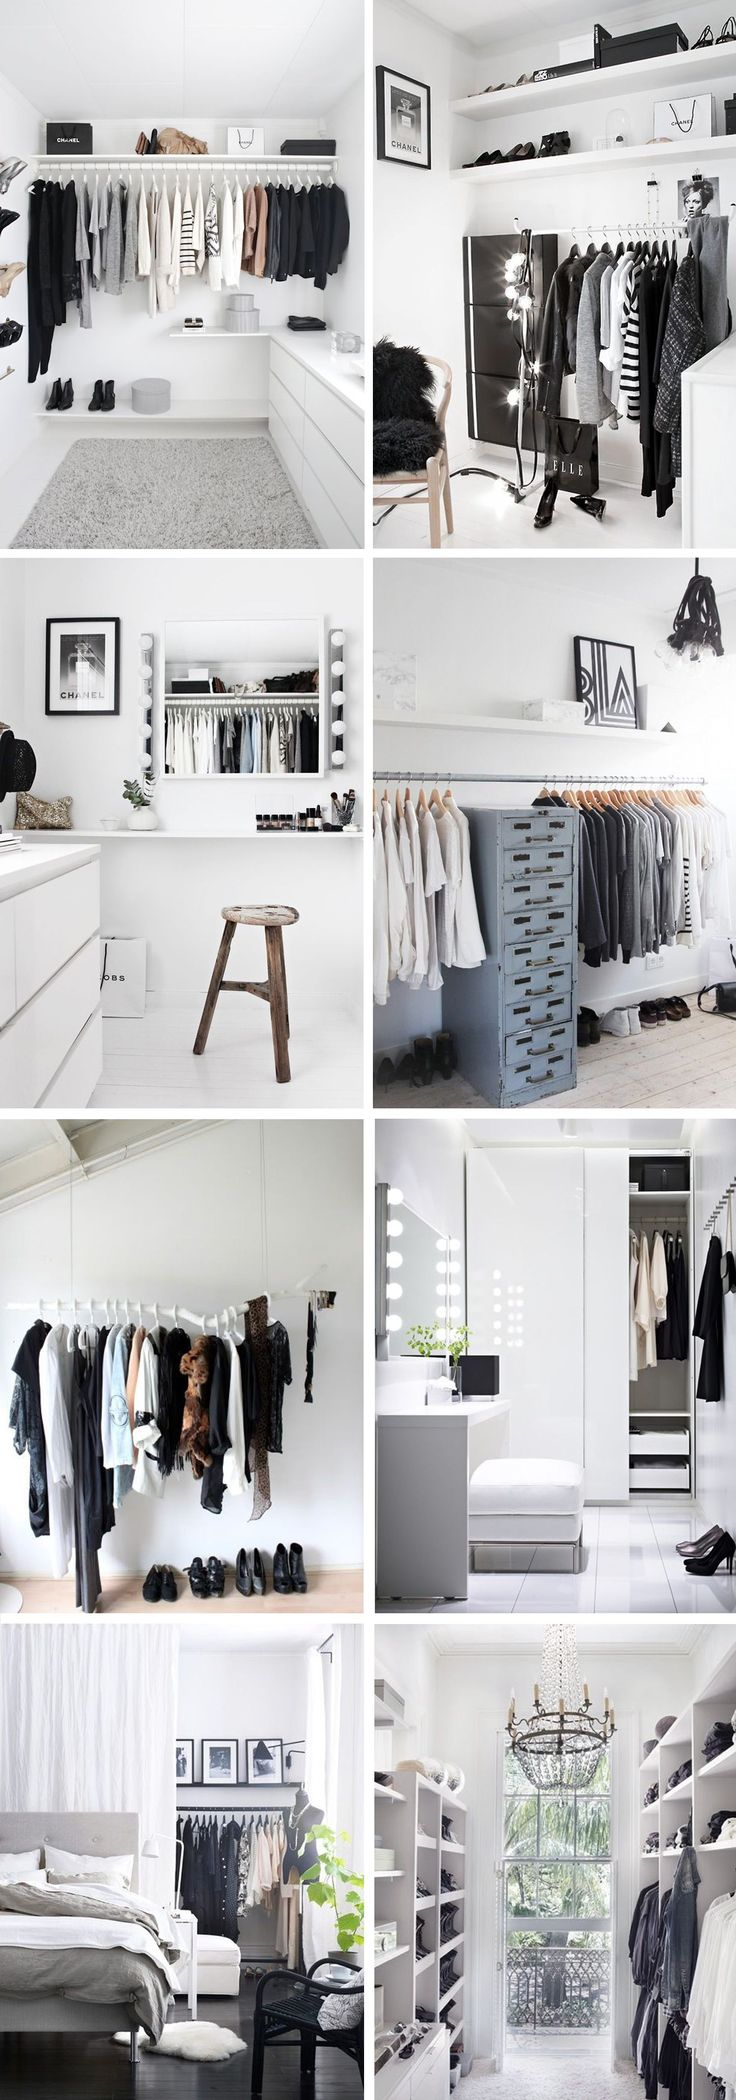 walk-in-closet,-garderobe,-dressing-room,-clothins-rack,-clothes-rack,-tøjstativ@2x